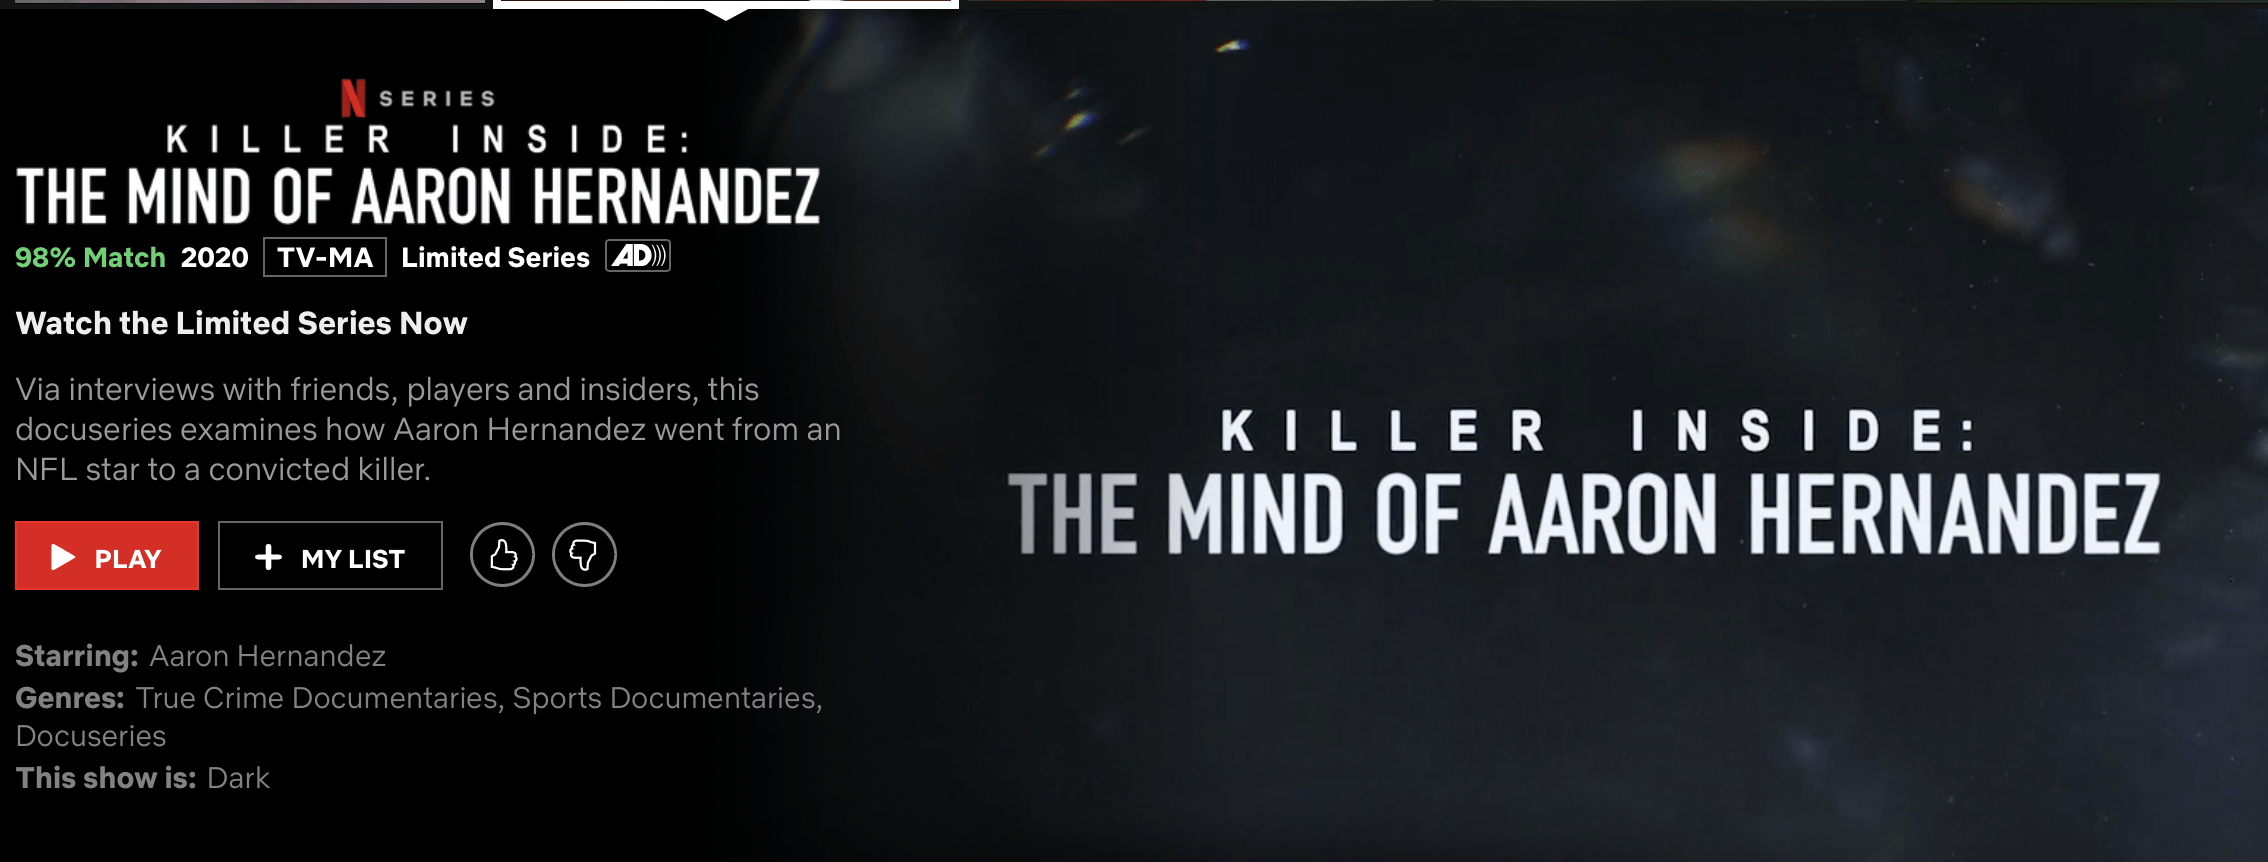 Killer Inside: The Mind of Aaron Hernandez challenges the American dream